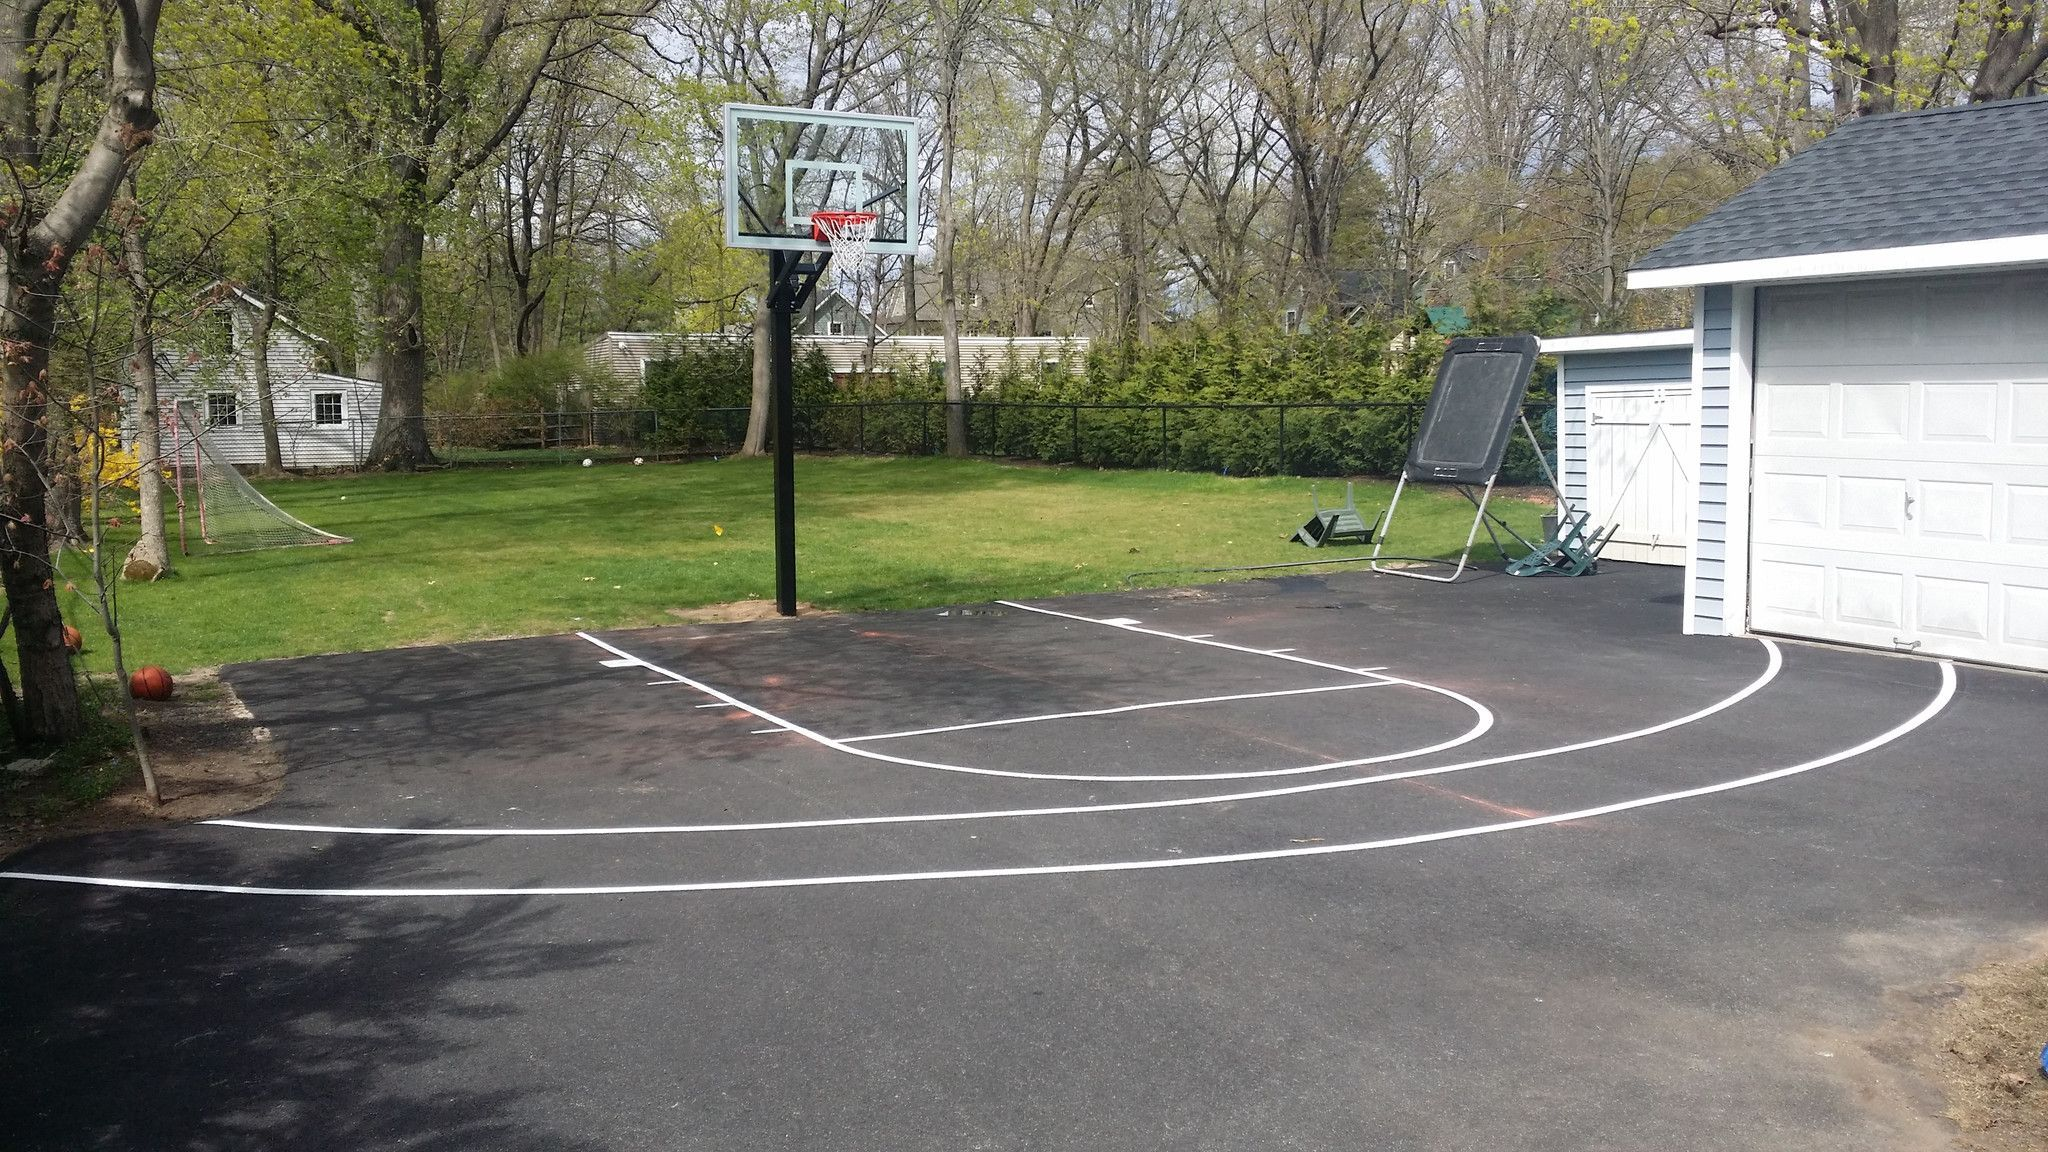 Driveway Basketball Court Line Painting Service   Painting